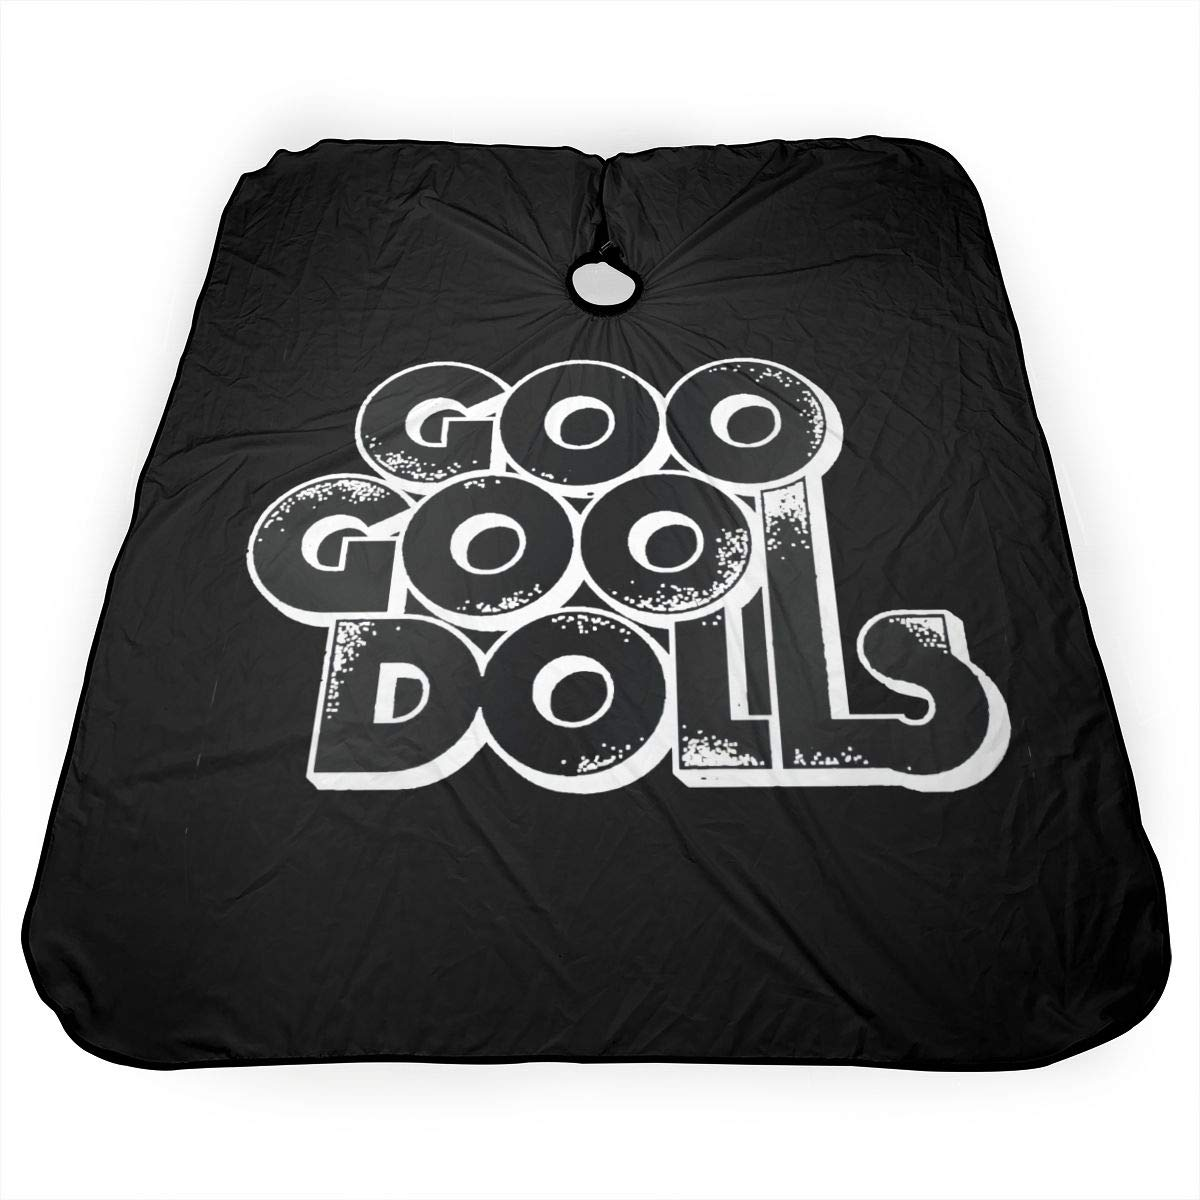 Goo Goo Dolls Salon Hair Styling Professional Barber Cape With Snap Closure For Hair Cutting Haircut Apron 55 x 66 In